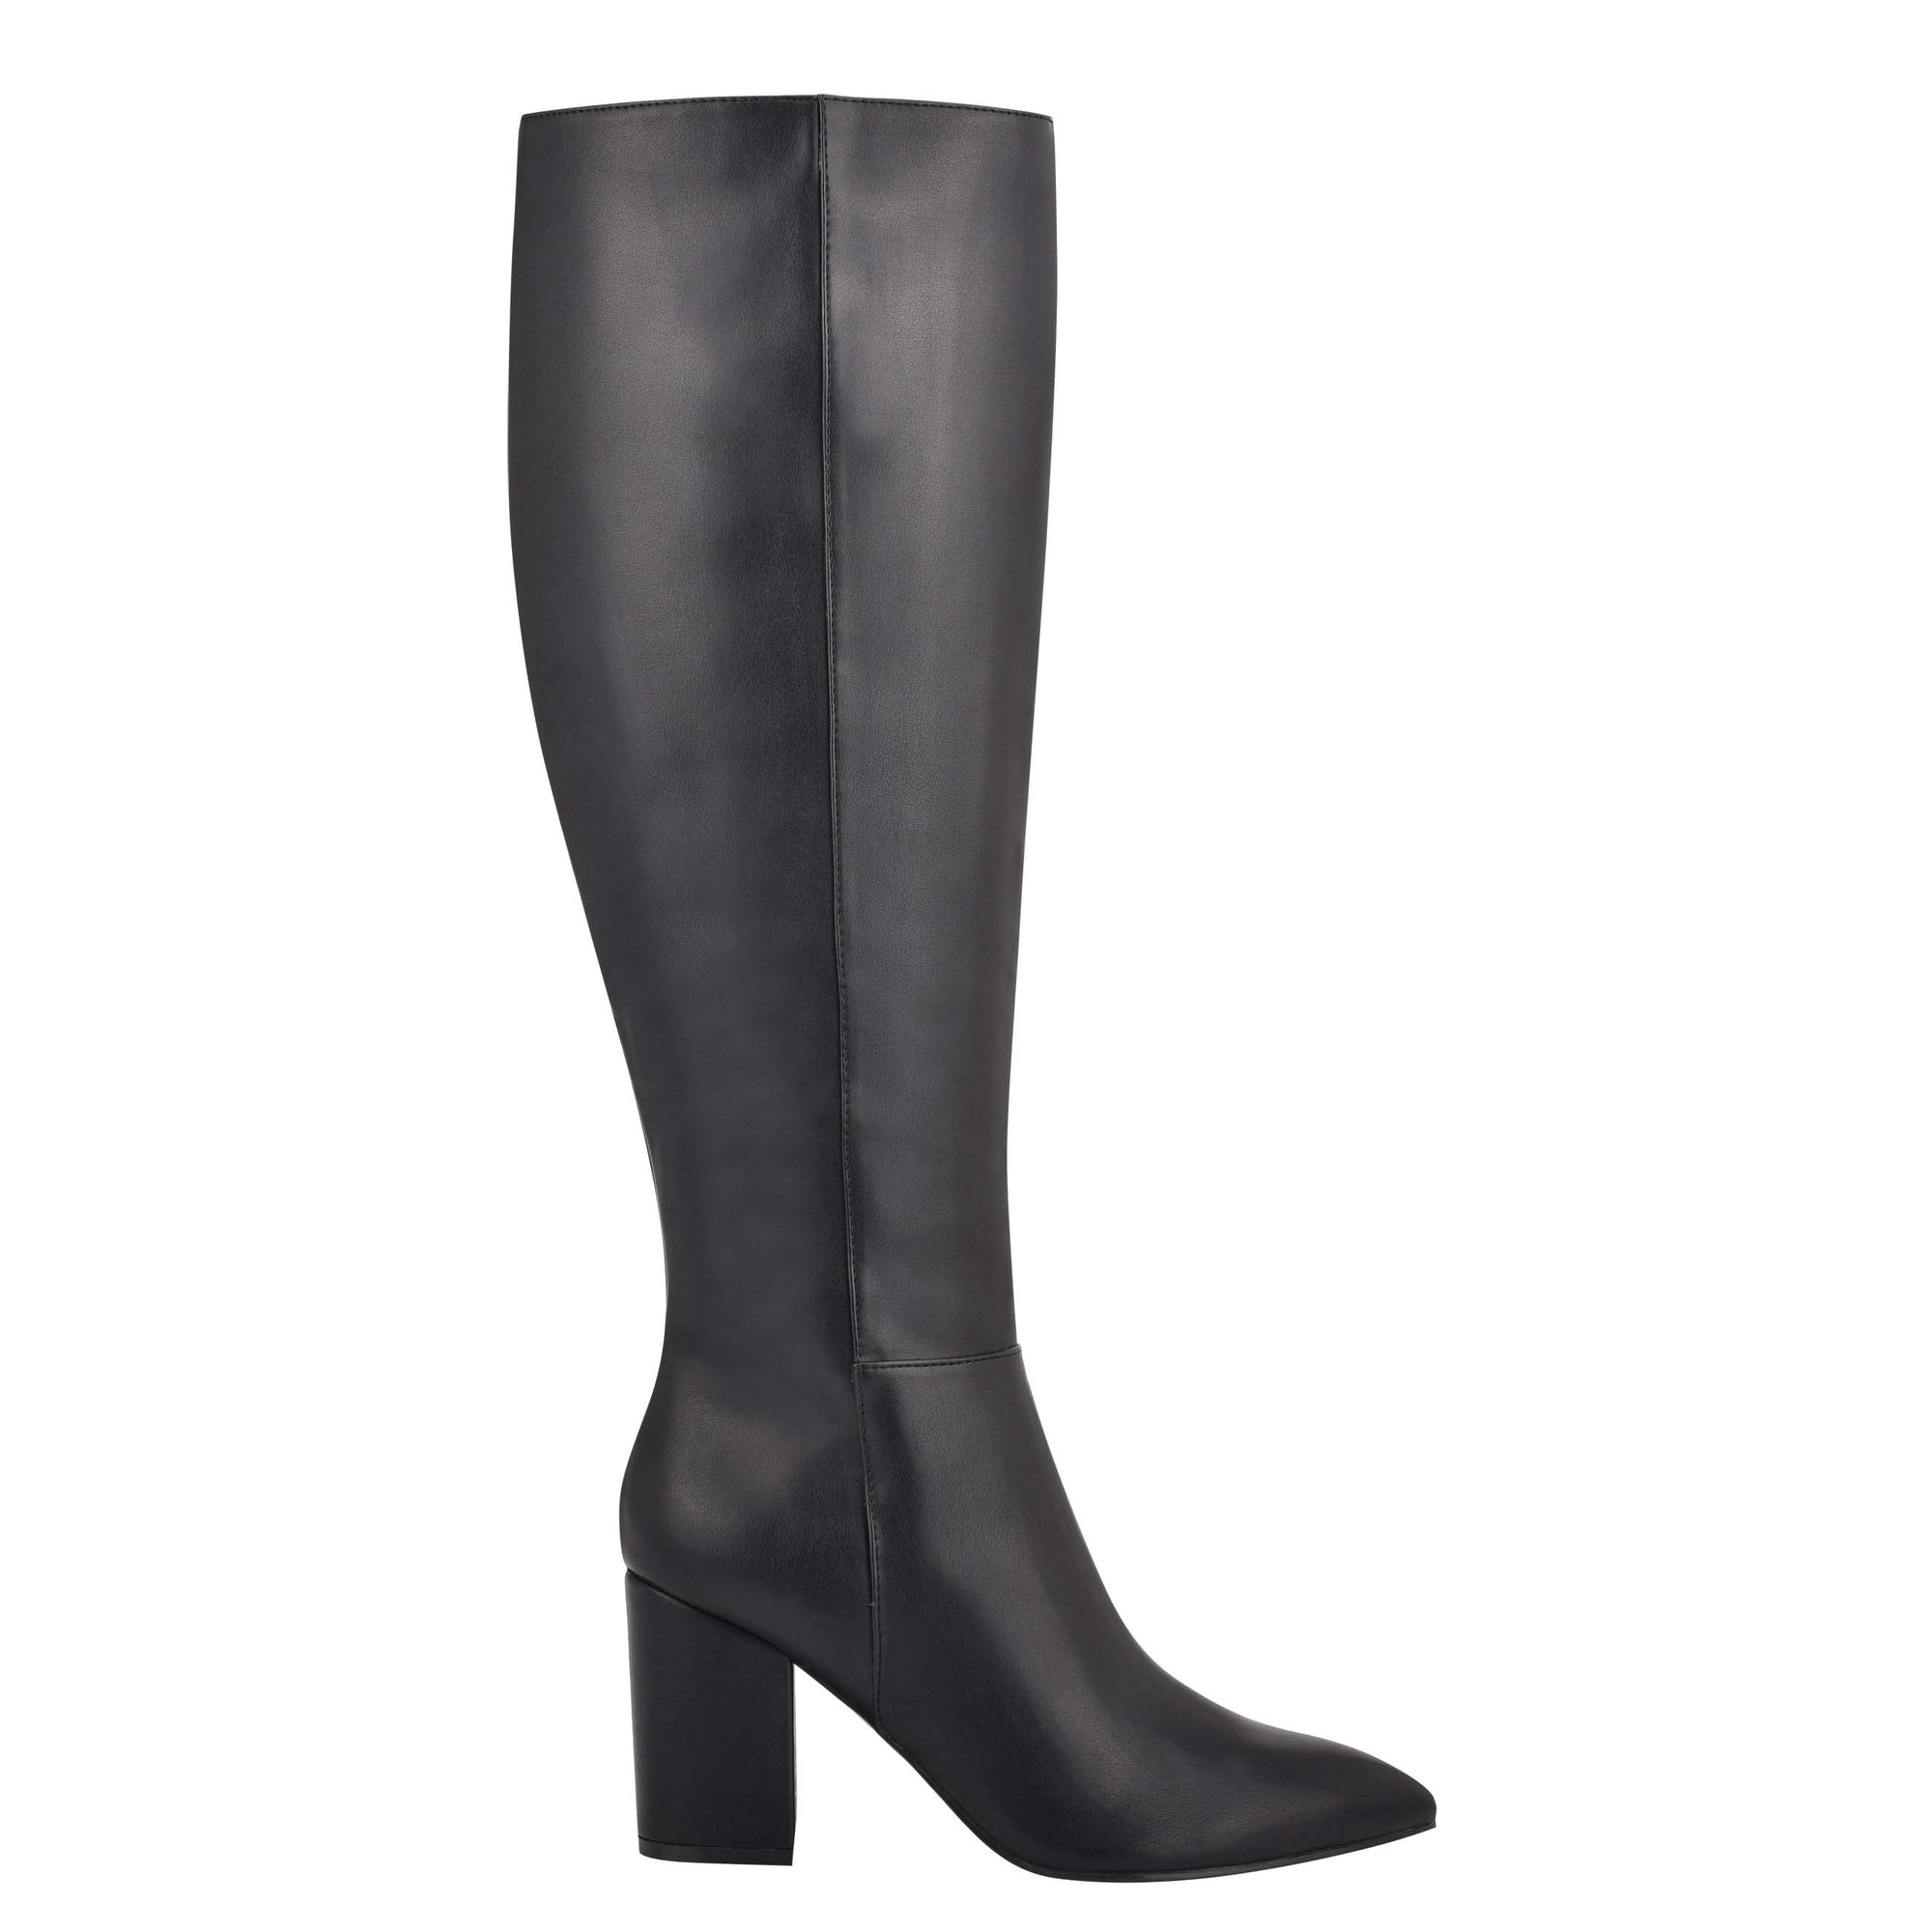 Adaly Heeled Boots